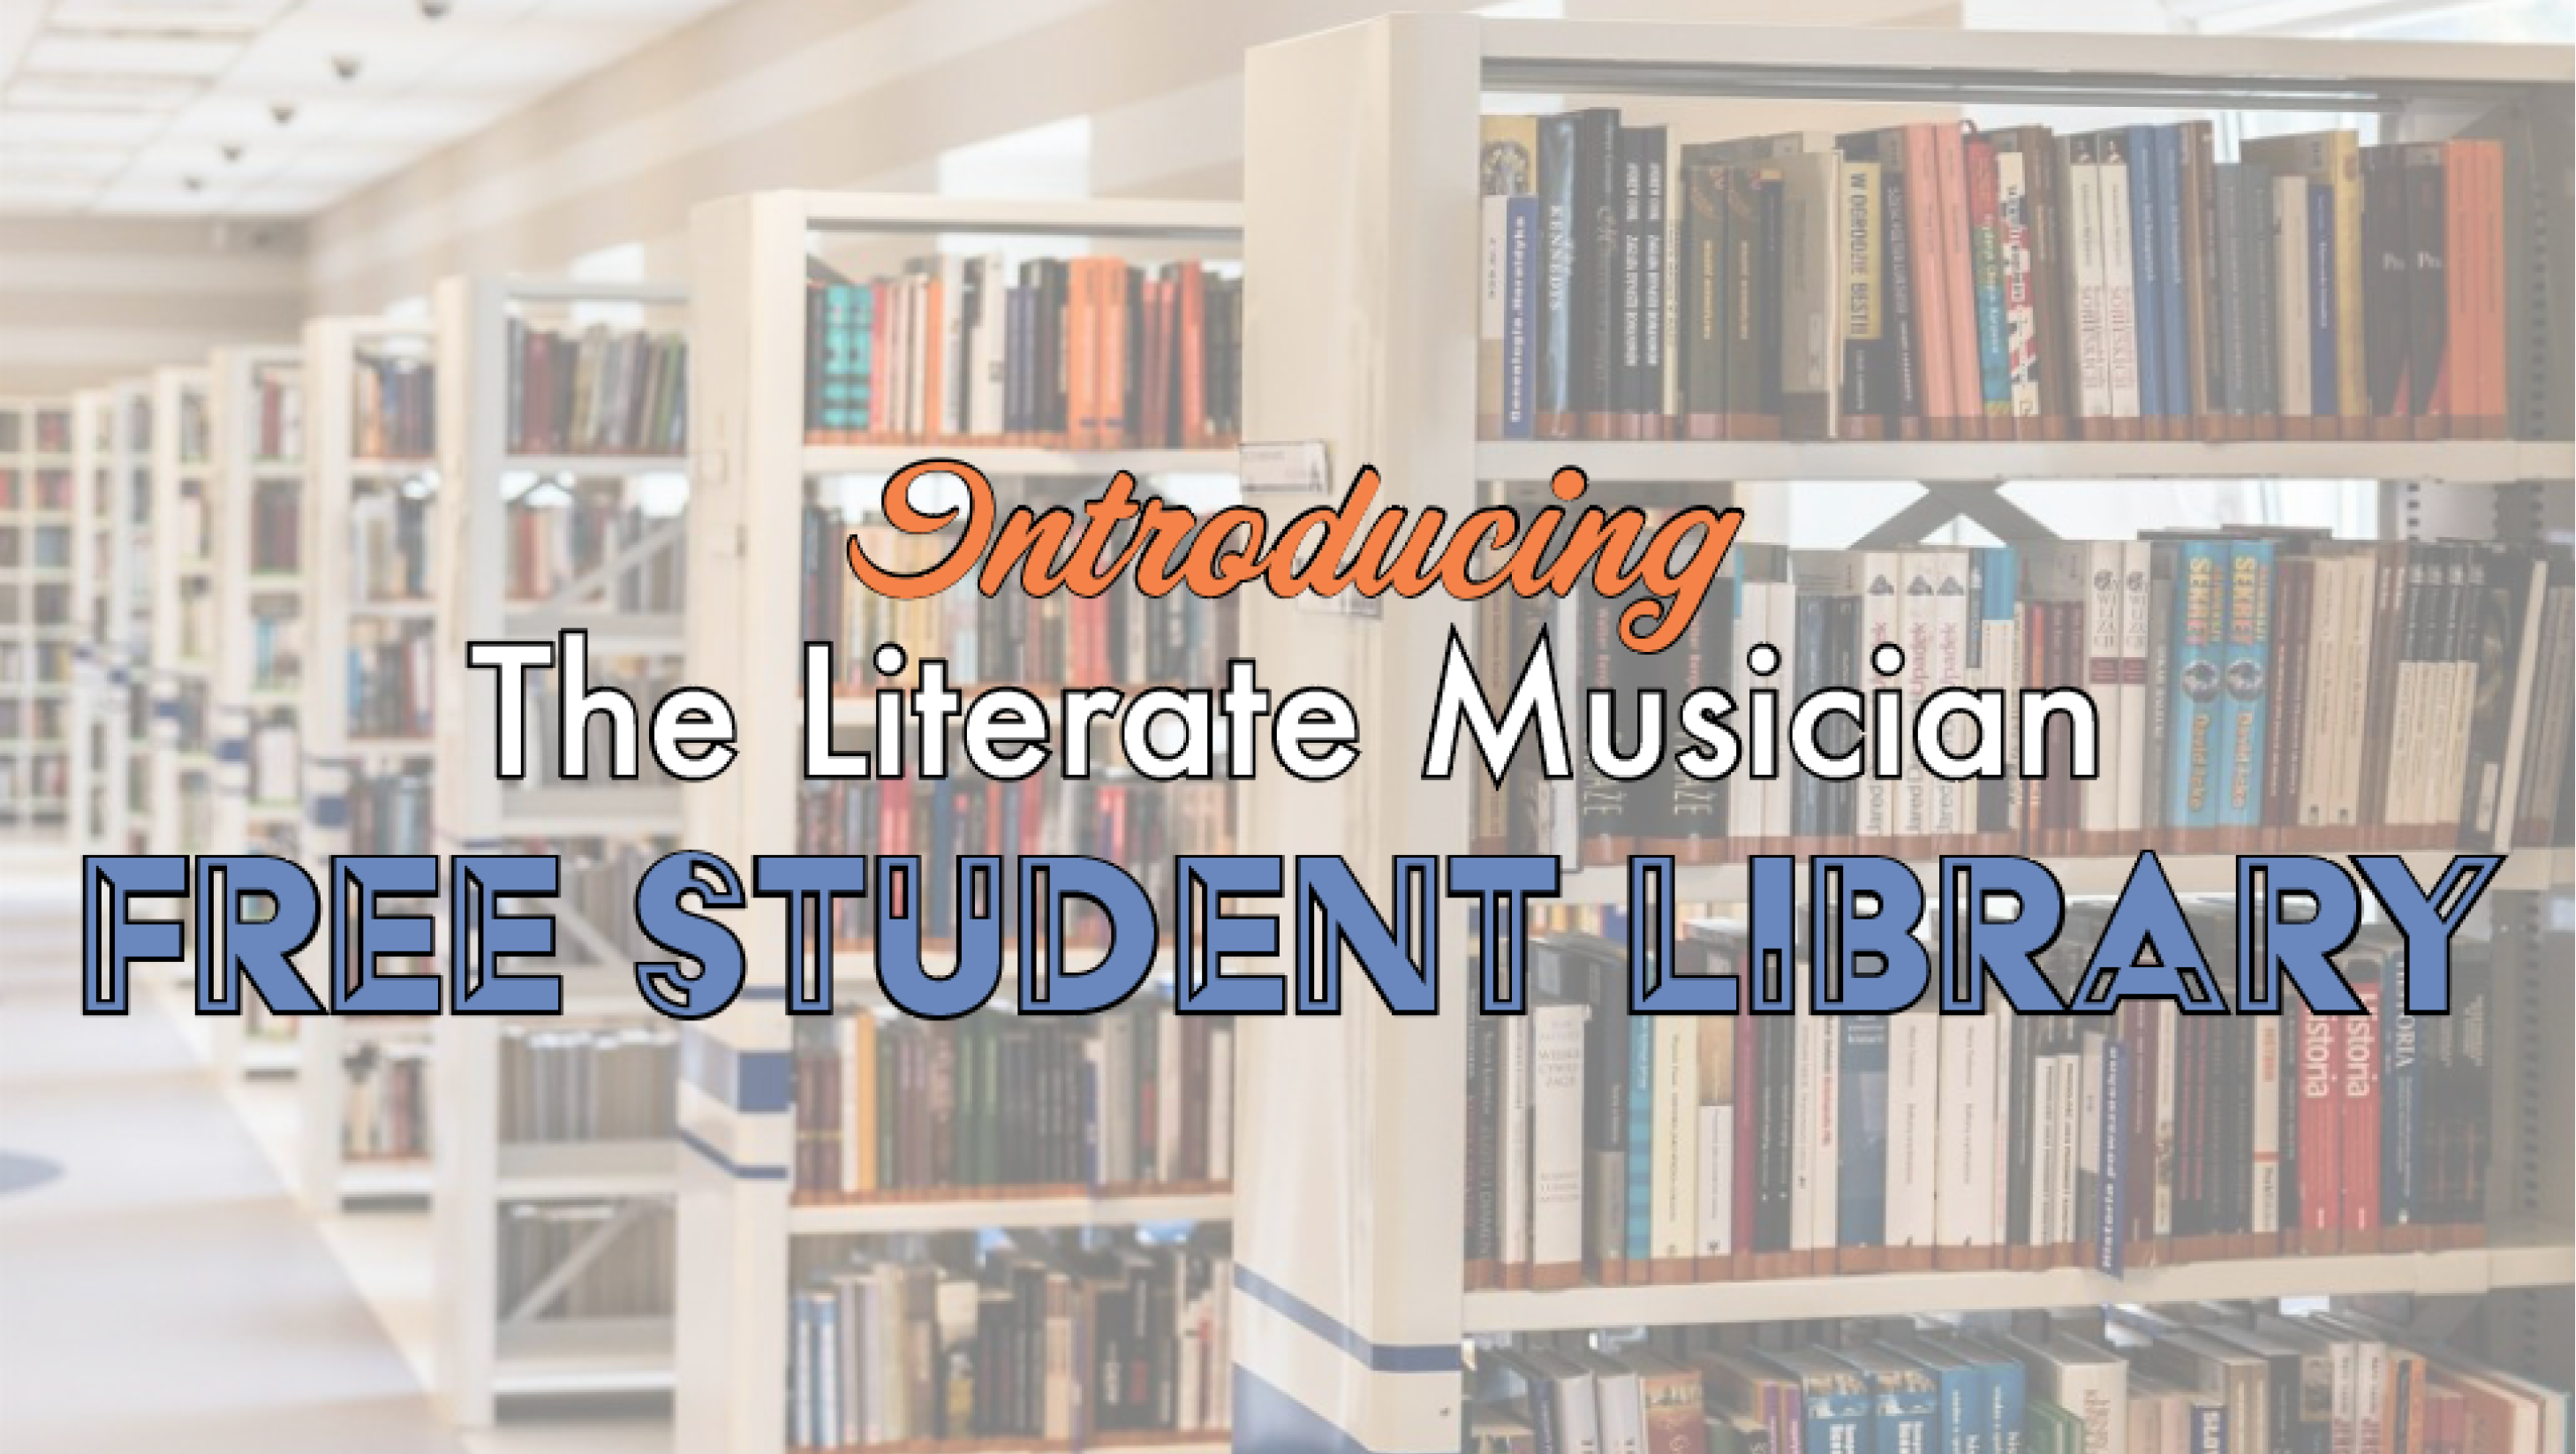 Introducing the FREE Student Library!